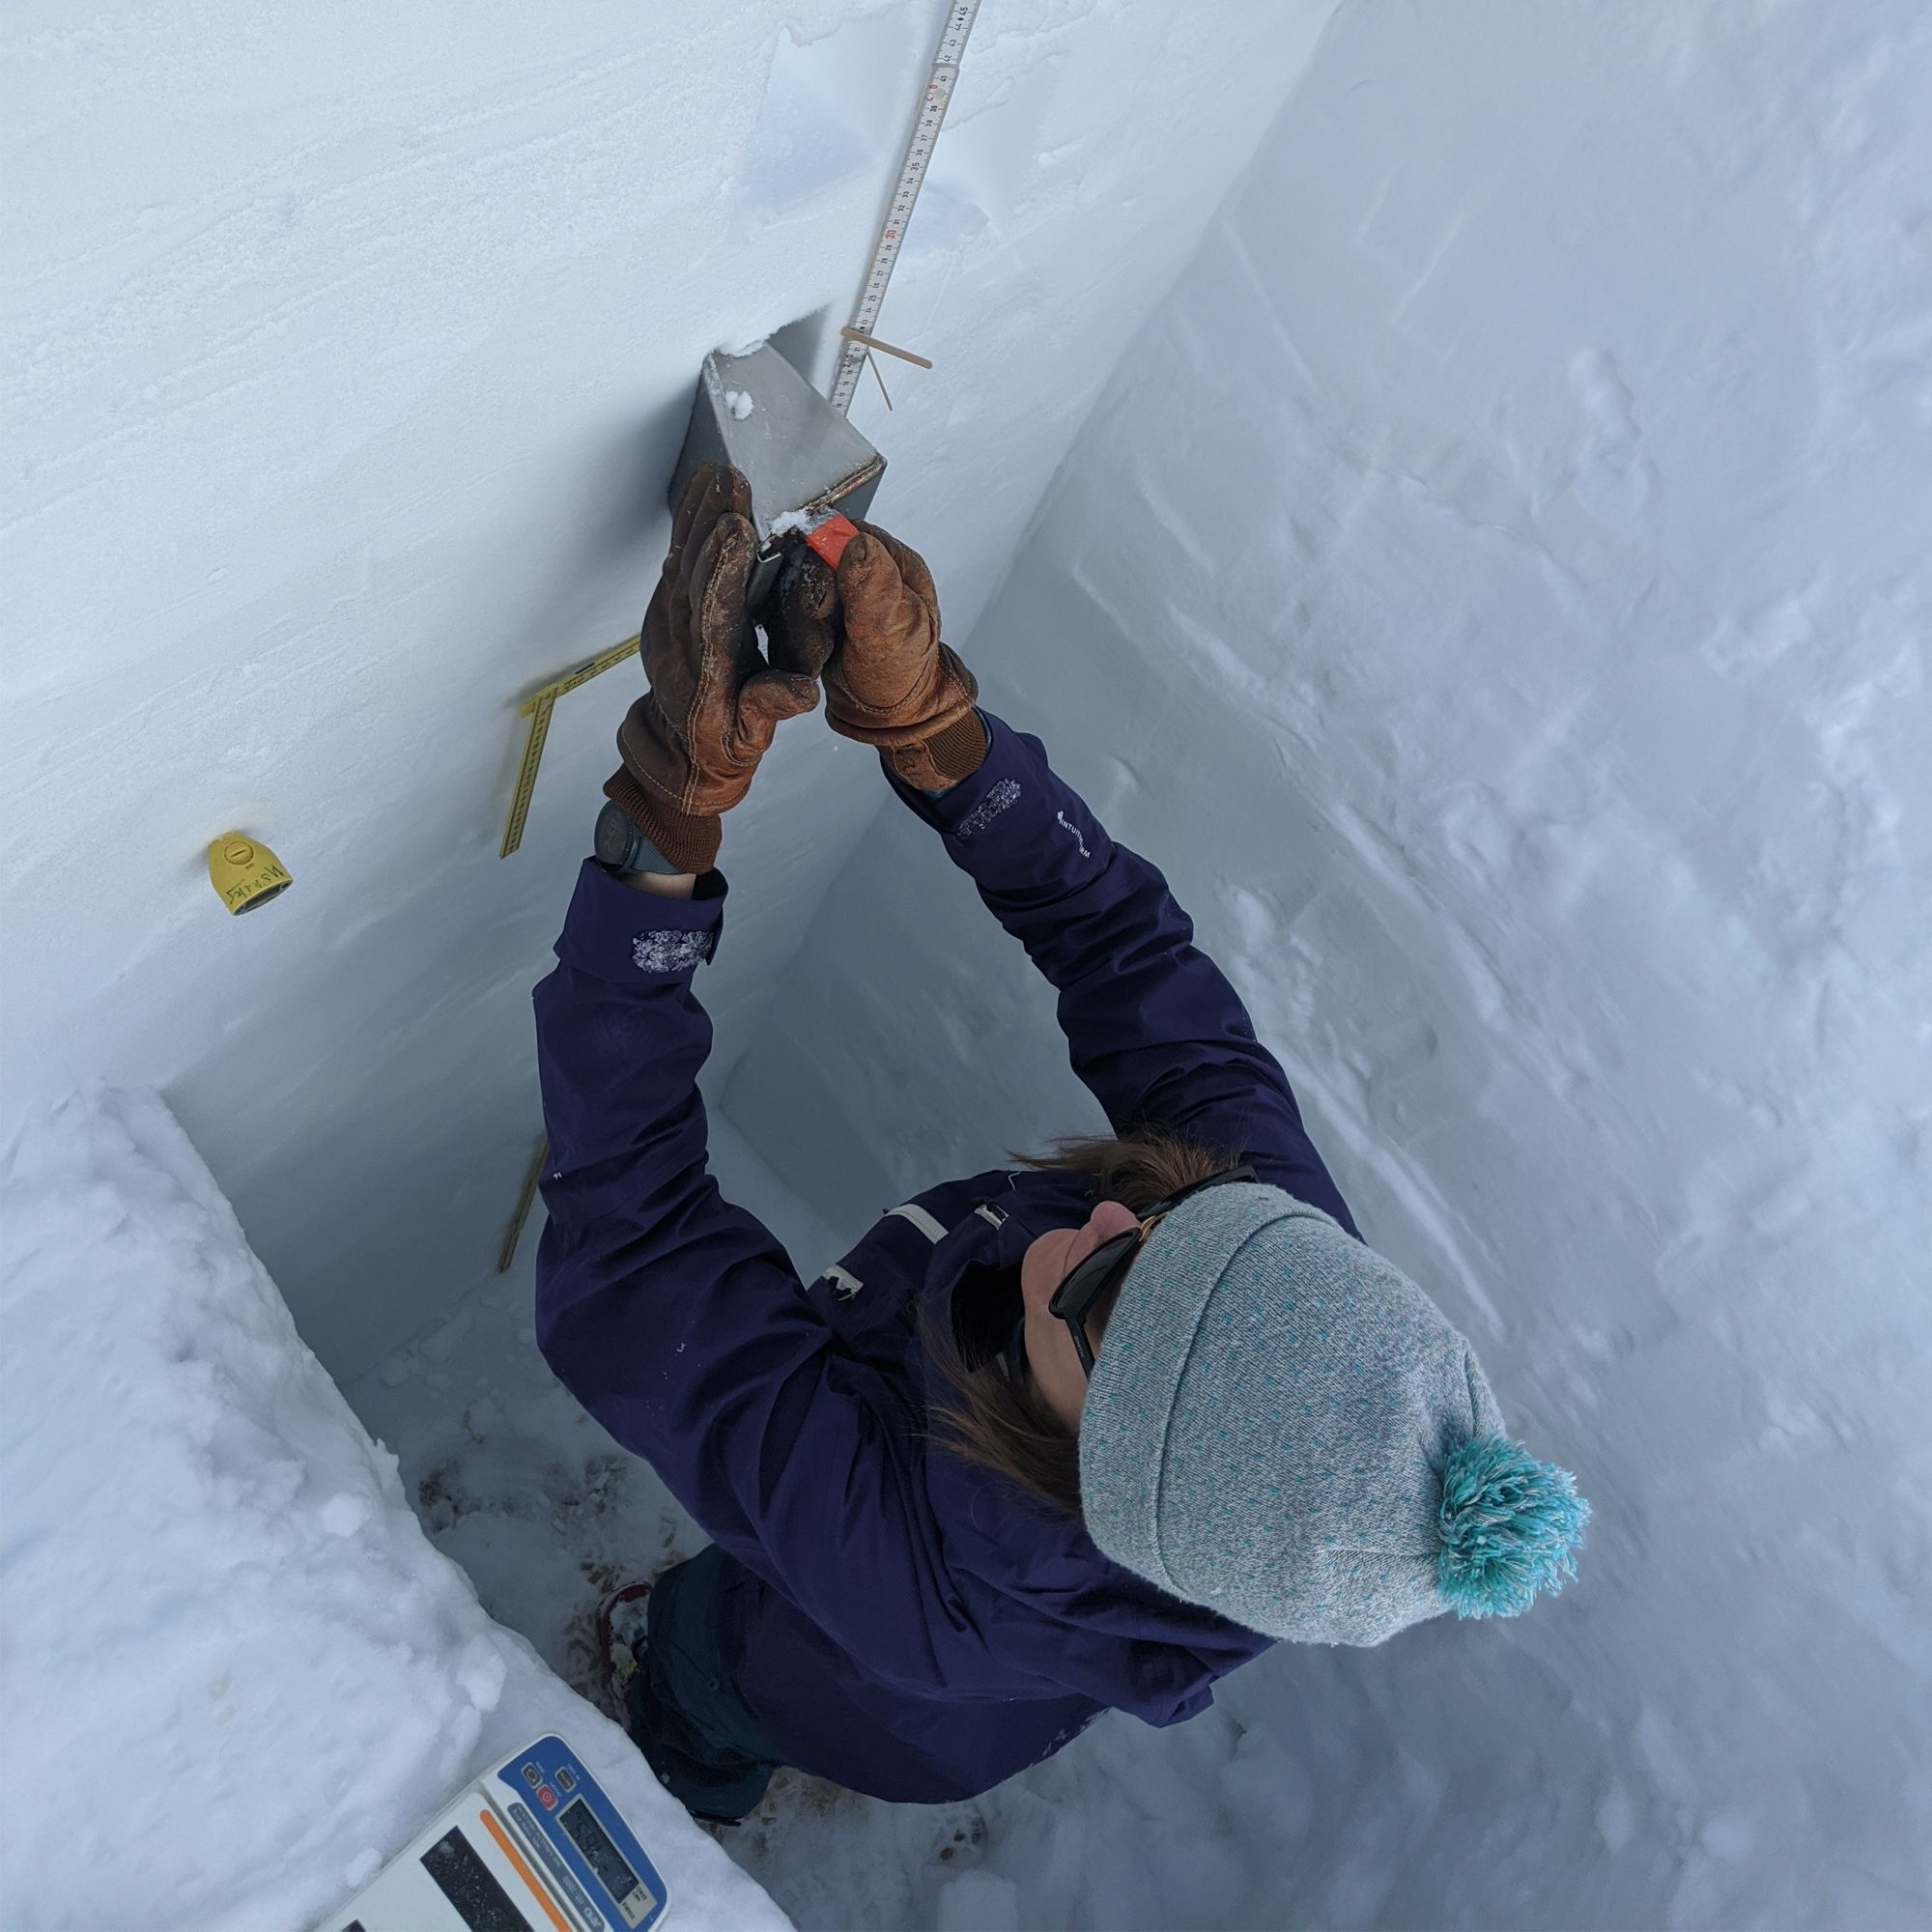 A woman in cold weather gear measures snow in a large square hole.